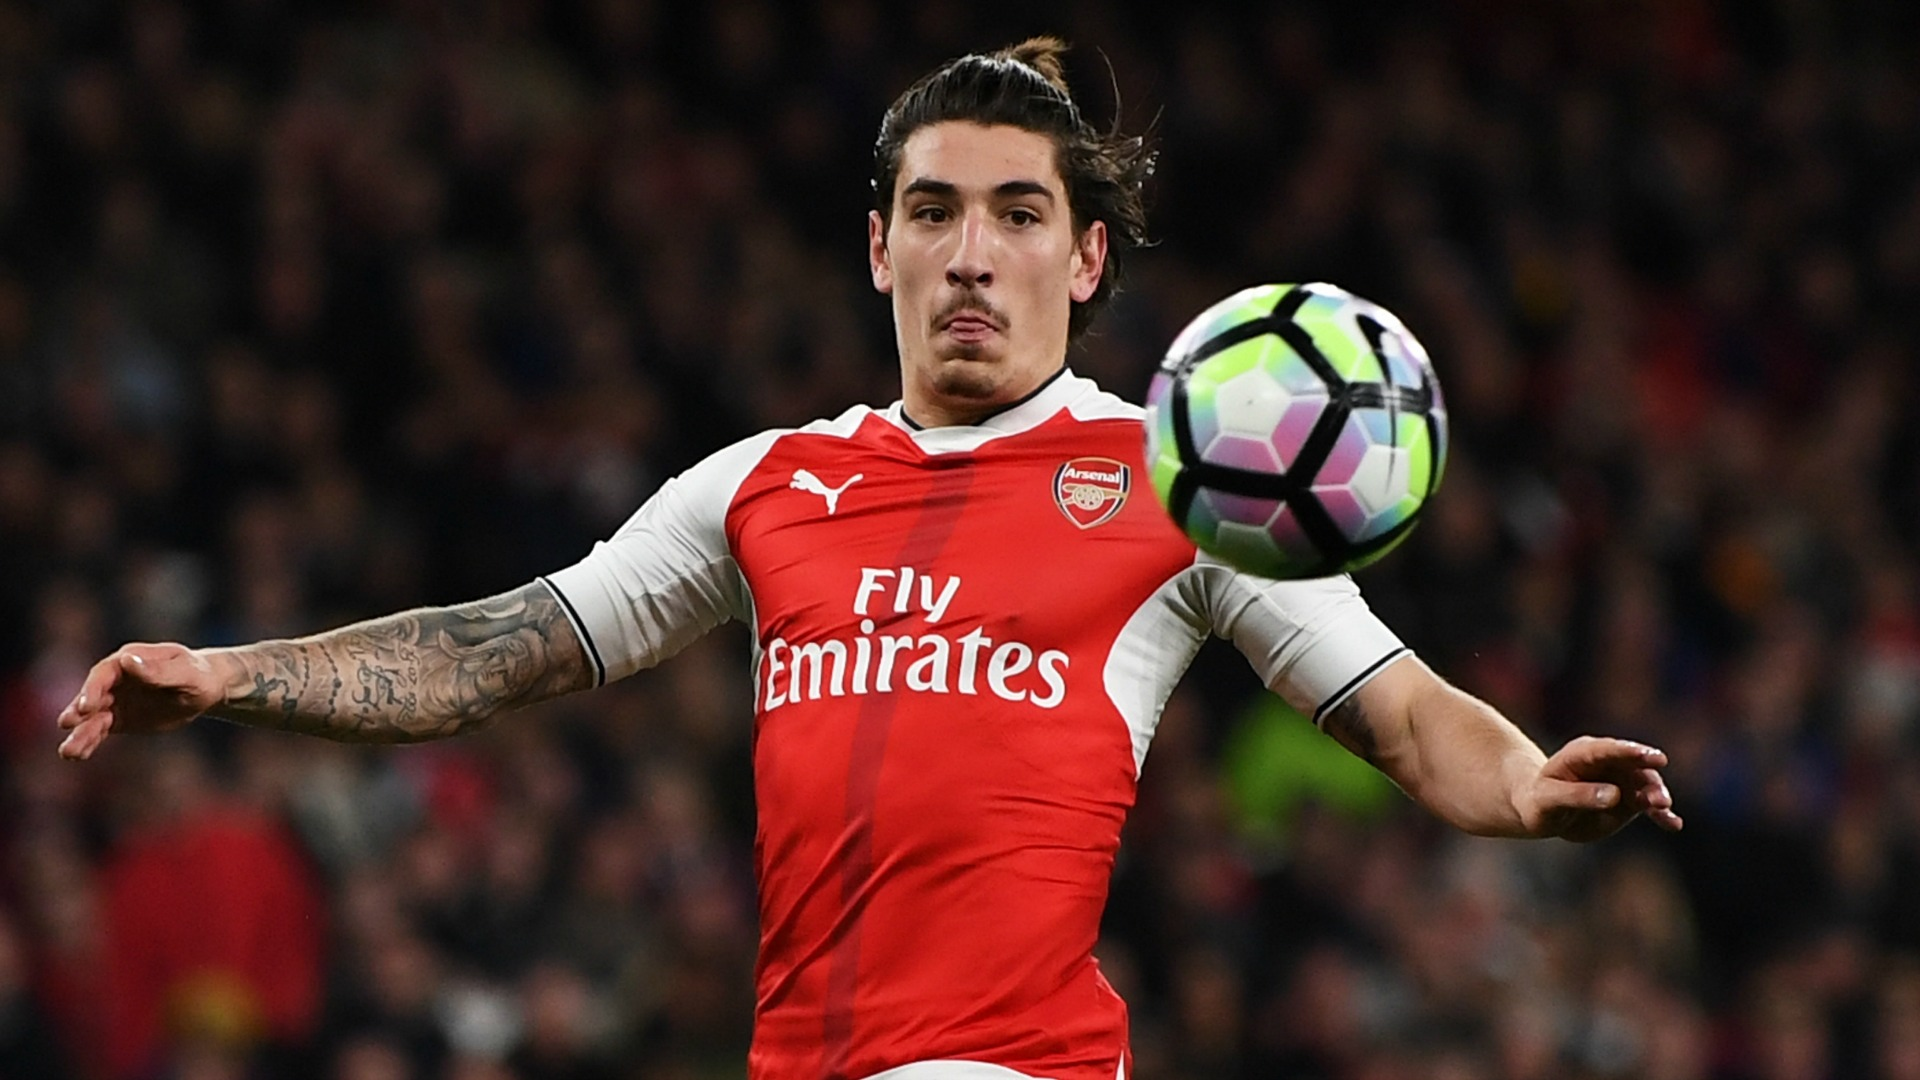 Bellerin prepared to defy wishes of Arsenal boss Wenger